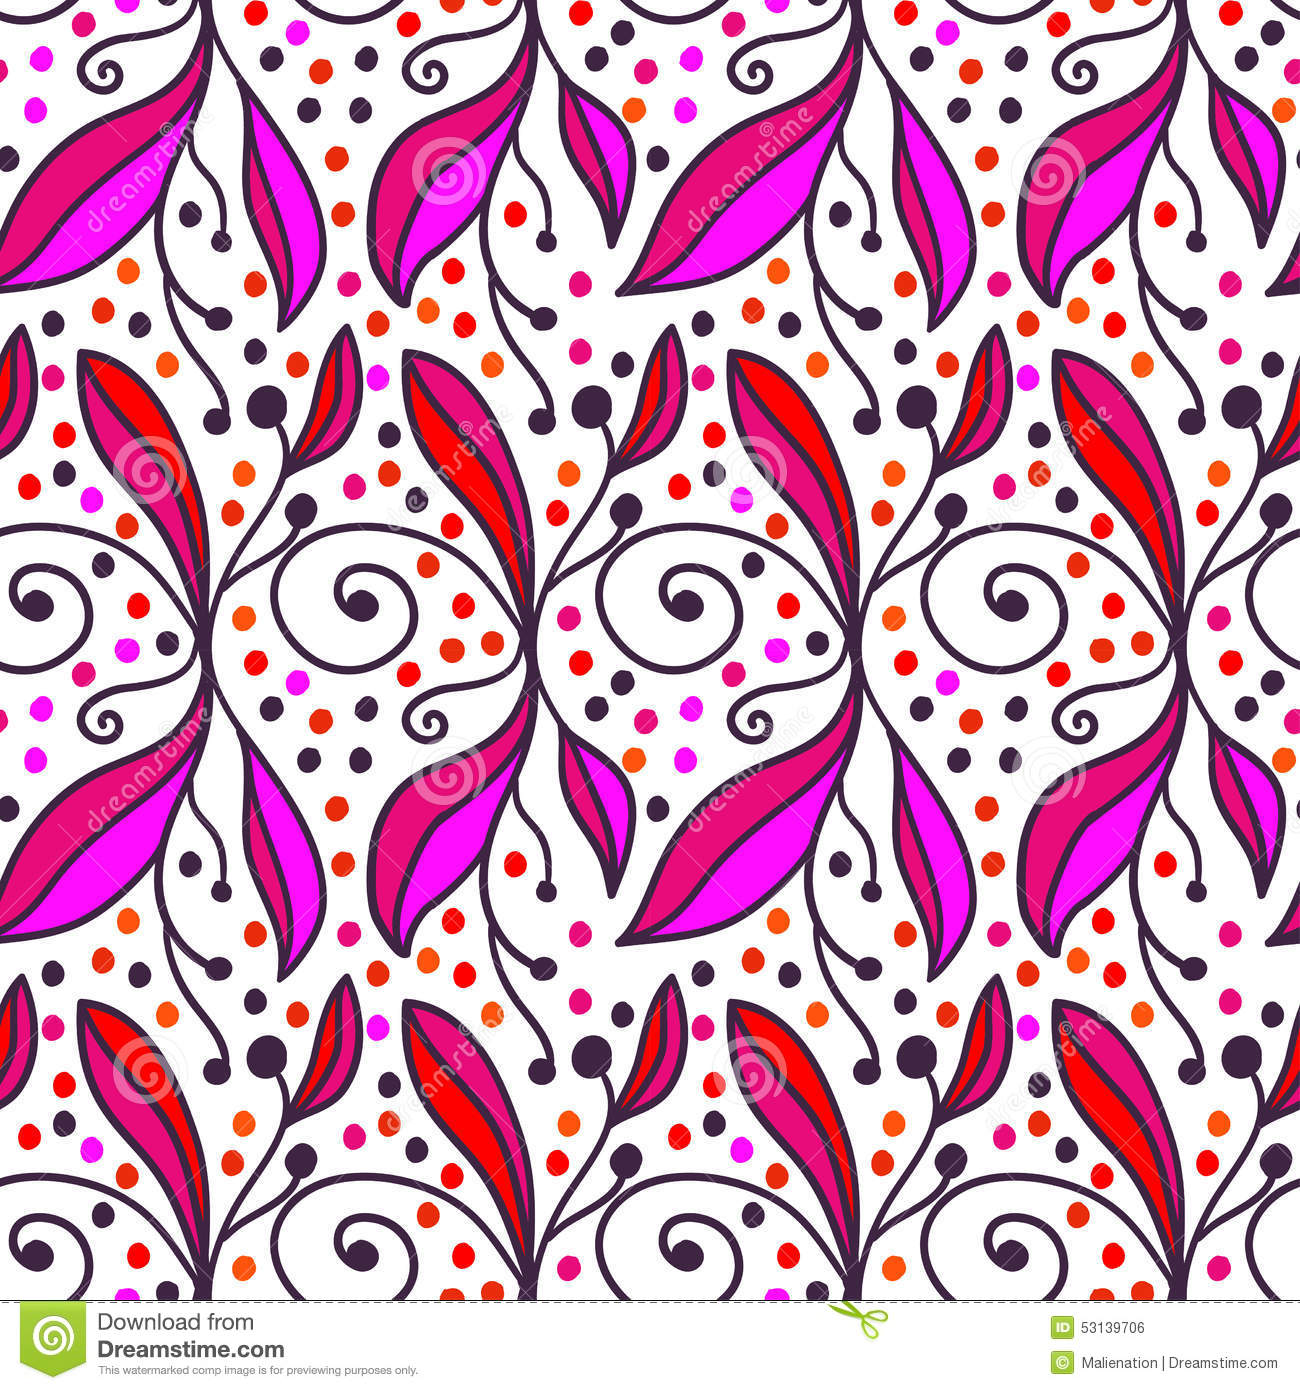 Ornamental doodle floral background. Seamless pattern for your design wallpapers, pattern fills, web page backgrounds, surface tex